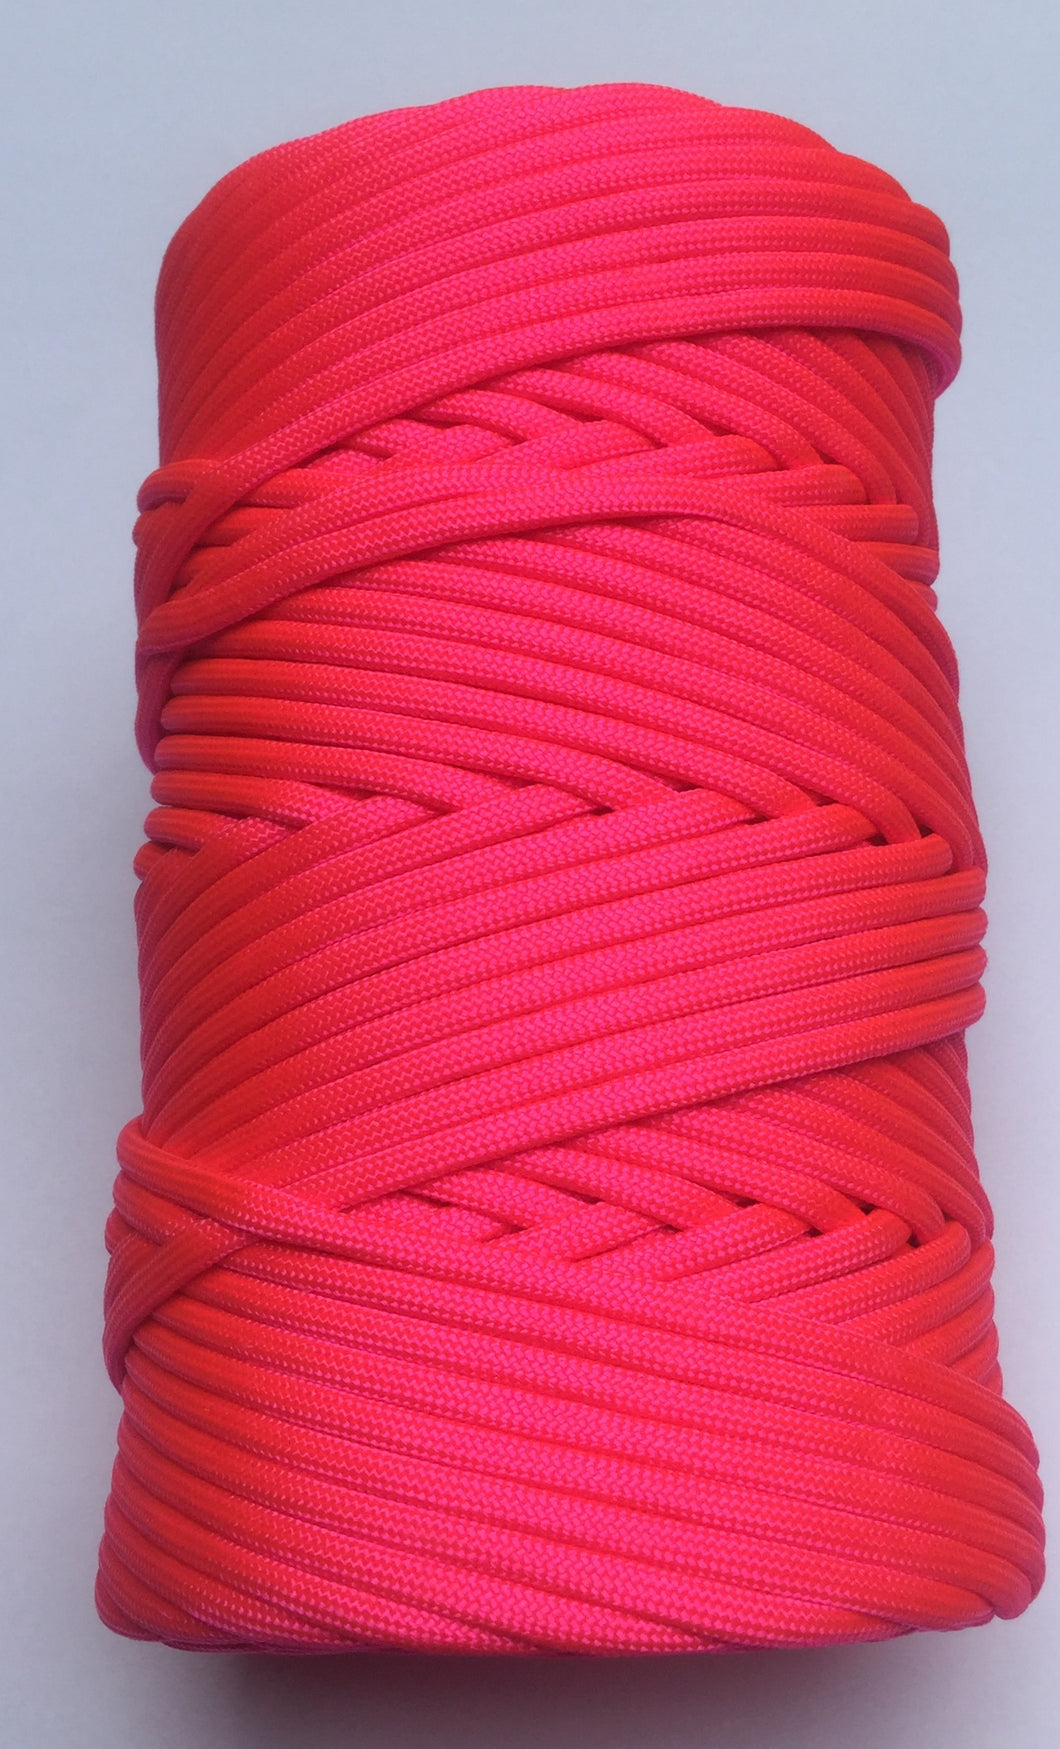 NEON PINK AMERICAN 550 PARACORD 300 FEET ROLL